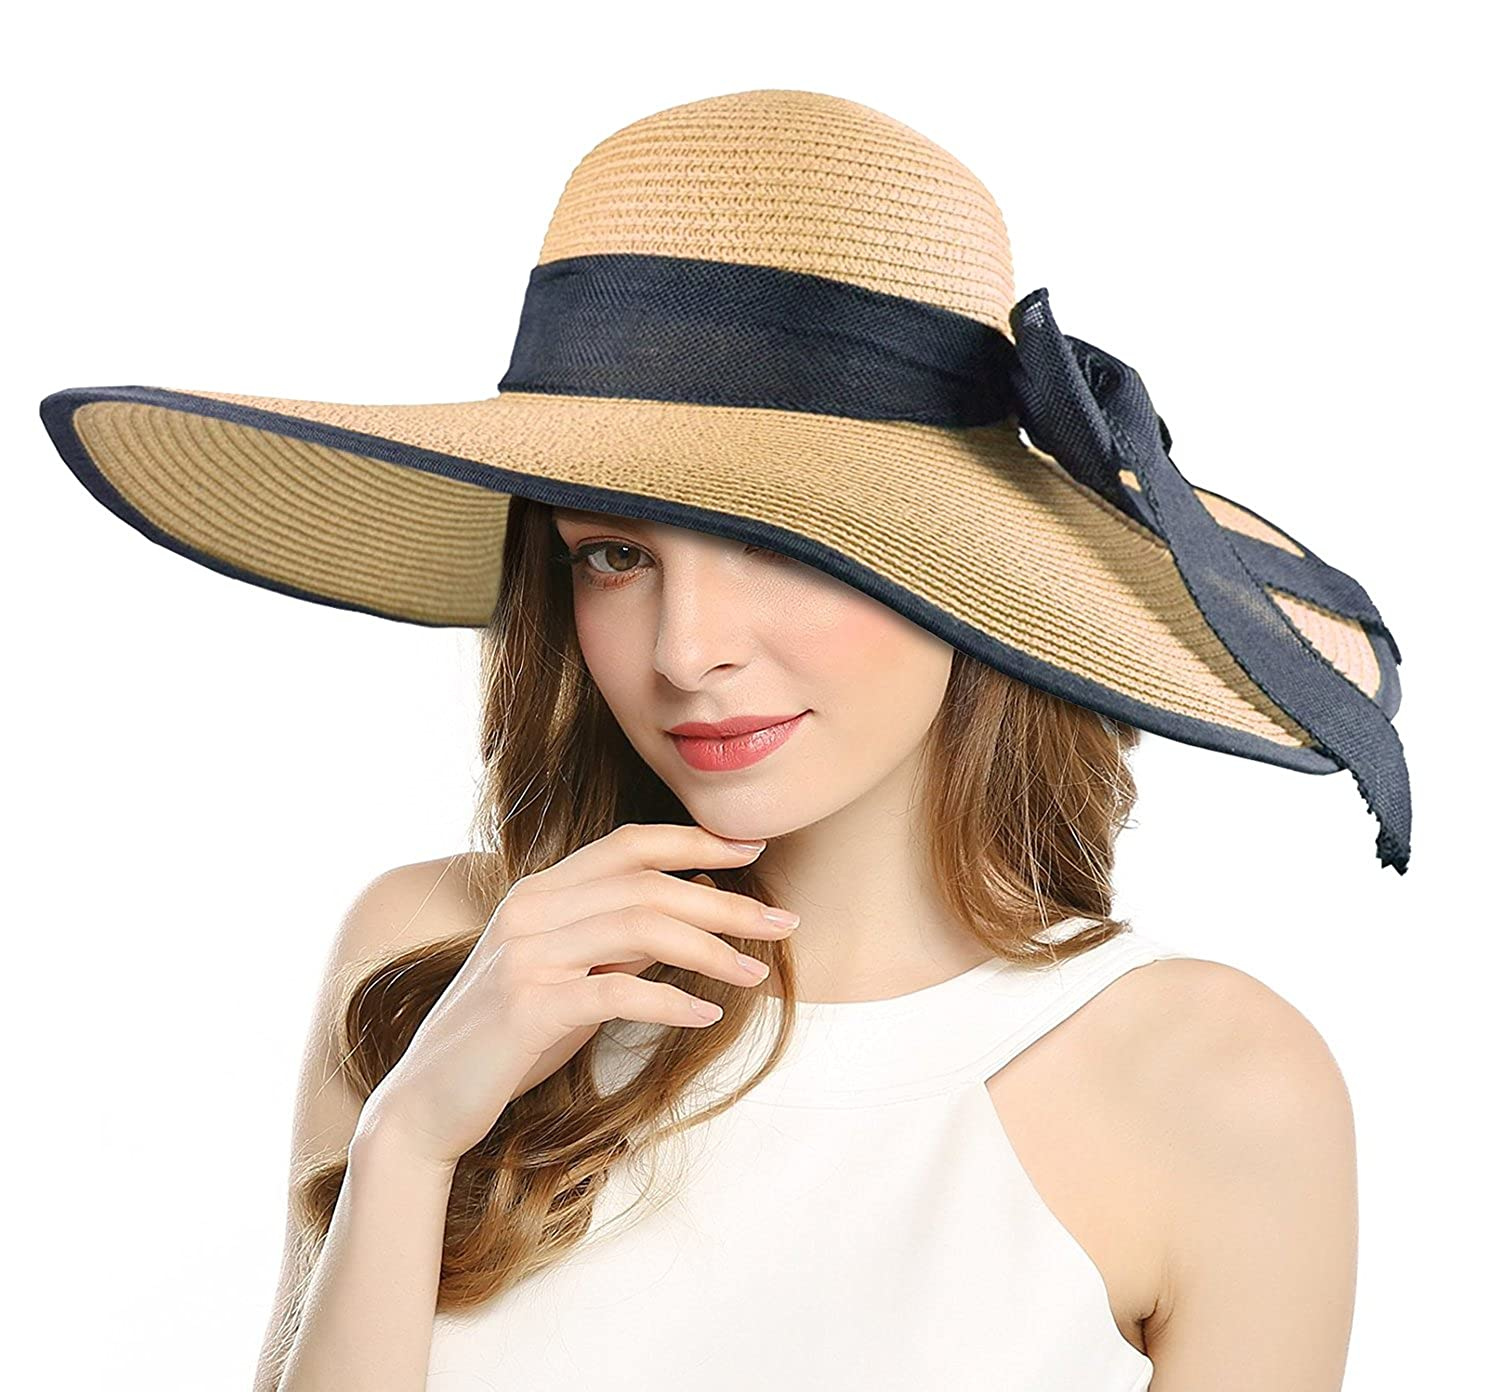 d00b719a55e57 Women s Beachwear Sun Hat Striped Straw Hat Floppy Big Brim Hat Black Beige  at Amazon Women s Clothing store